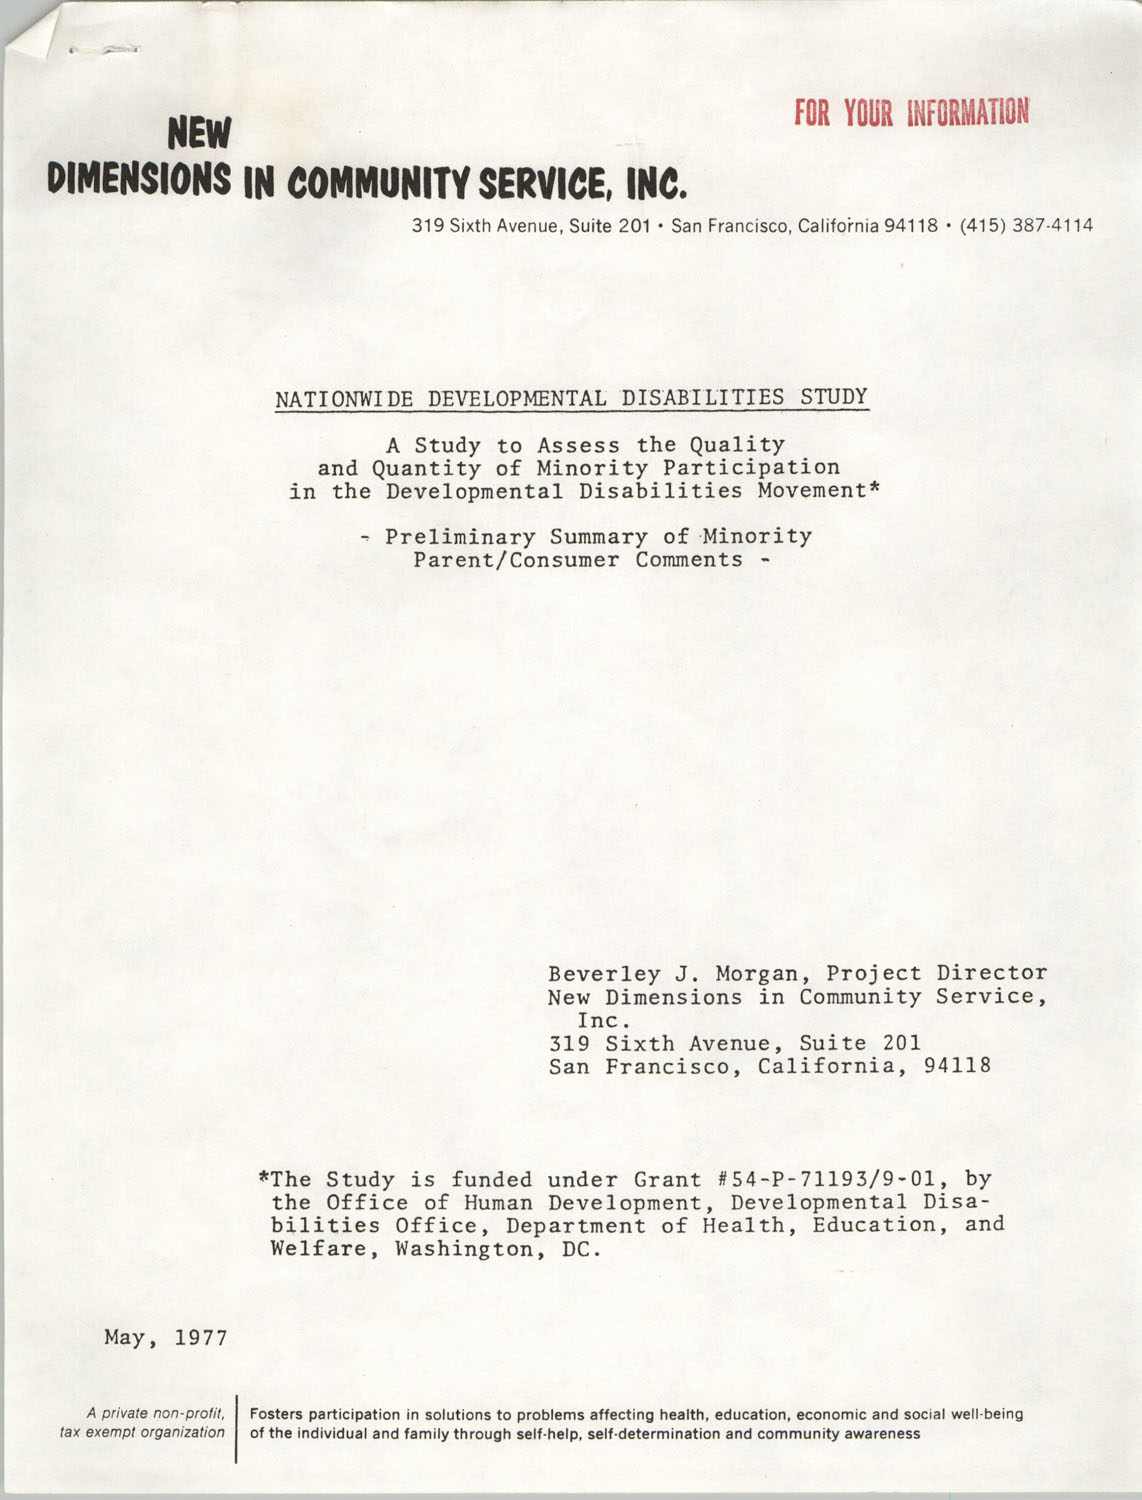 Nationwide Development Disabilities Study, New Dimensions in Community Service, May 1977